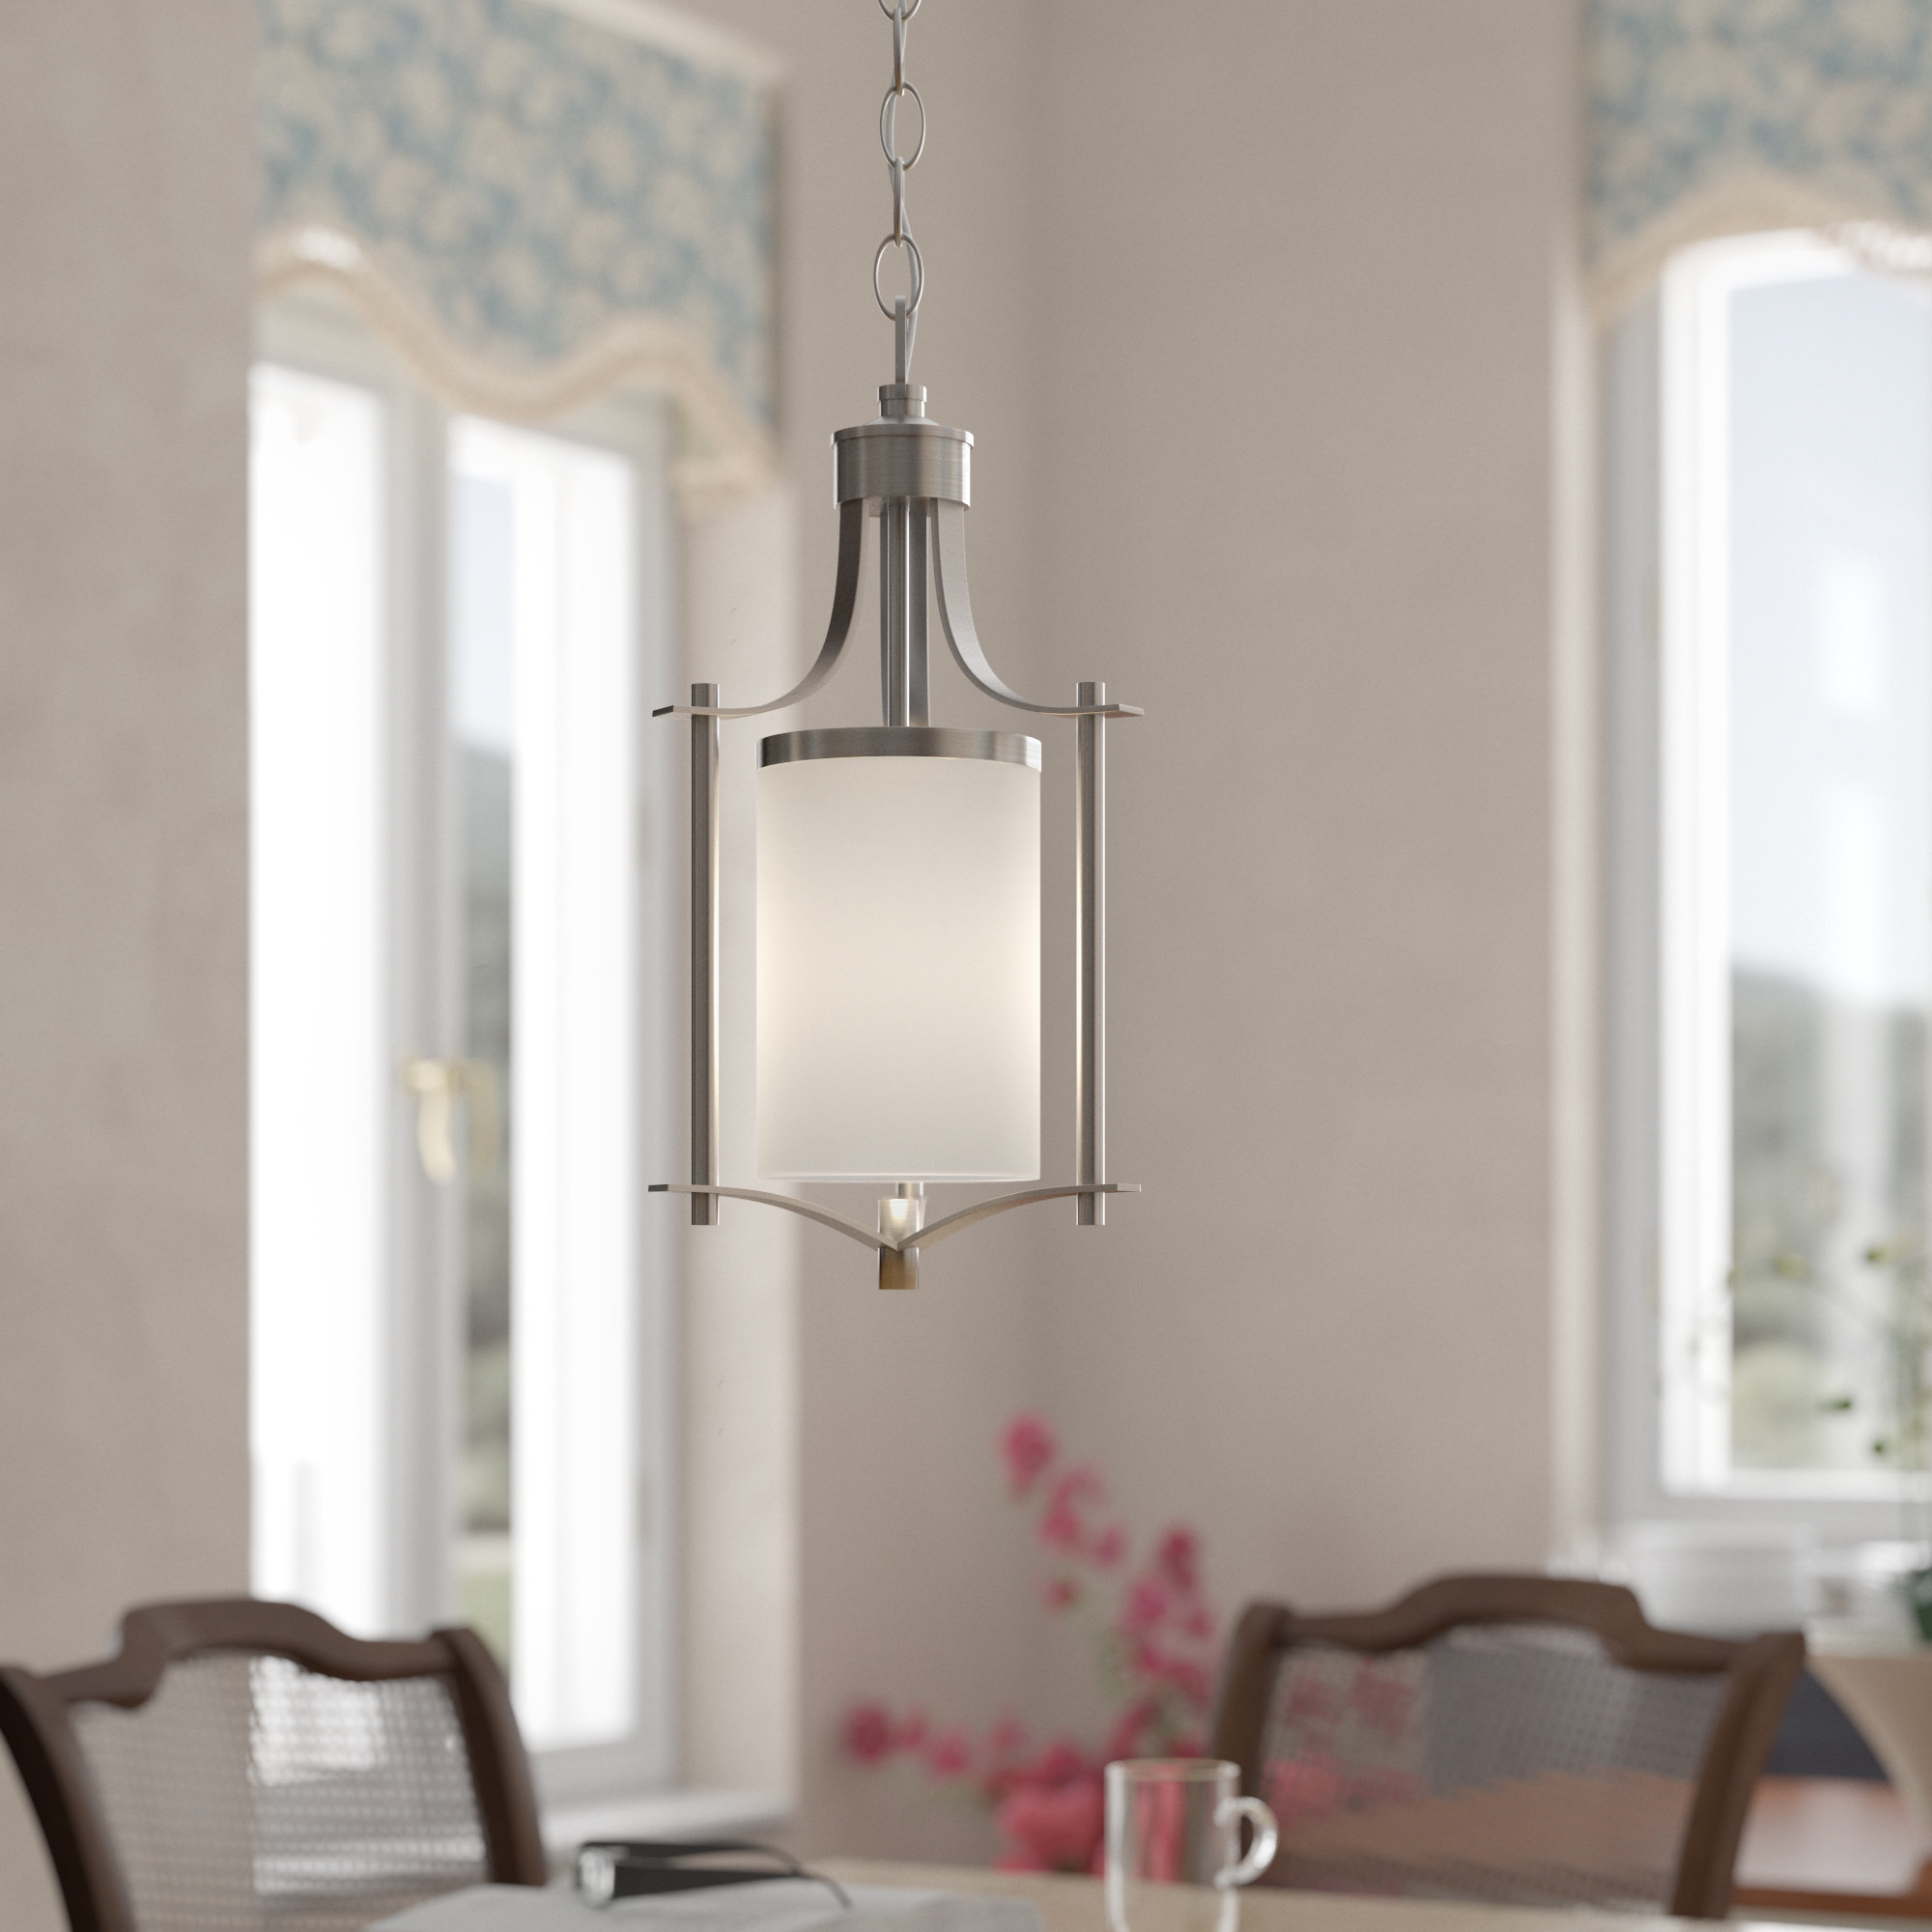 Pewter & Silver & Satin Nickel Pendant Lighting You'll Love Intended For Well Known Kimsey 1 Light Teardrop Pendants (View 20 of 25)